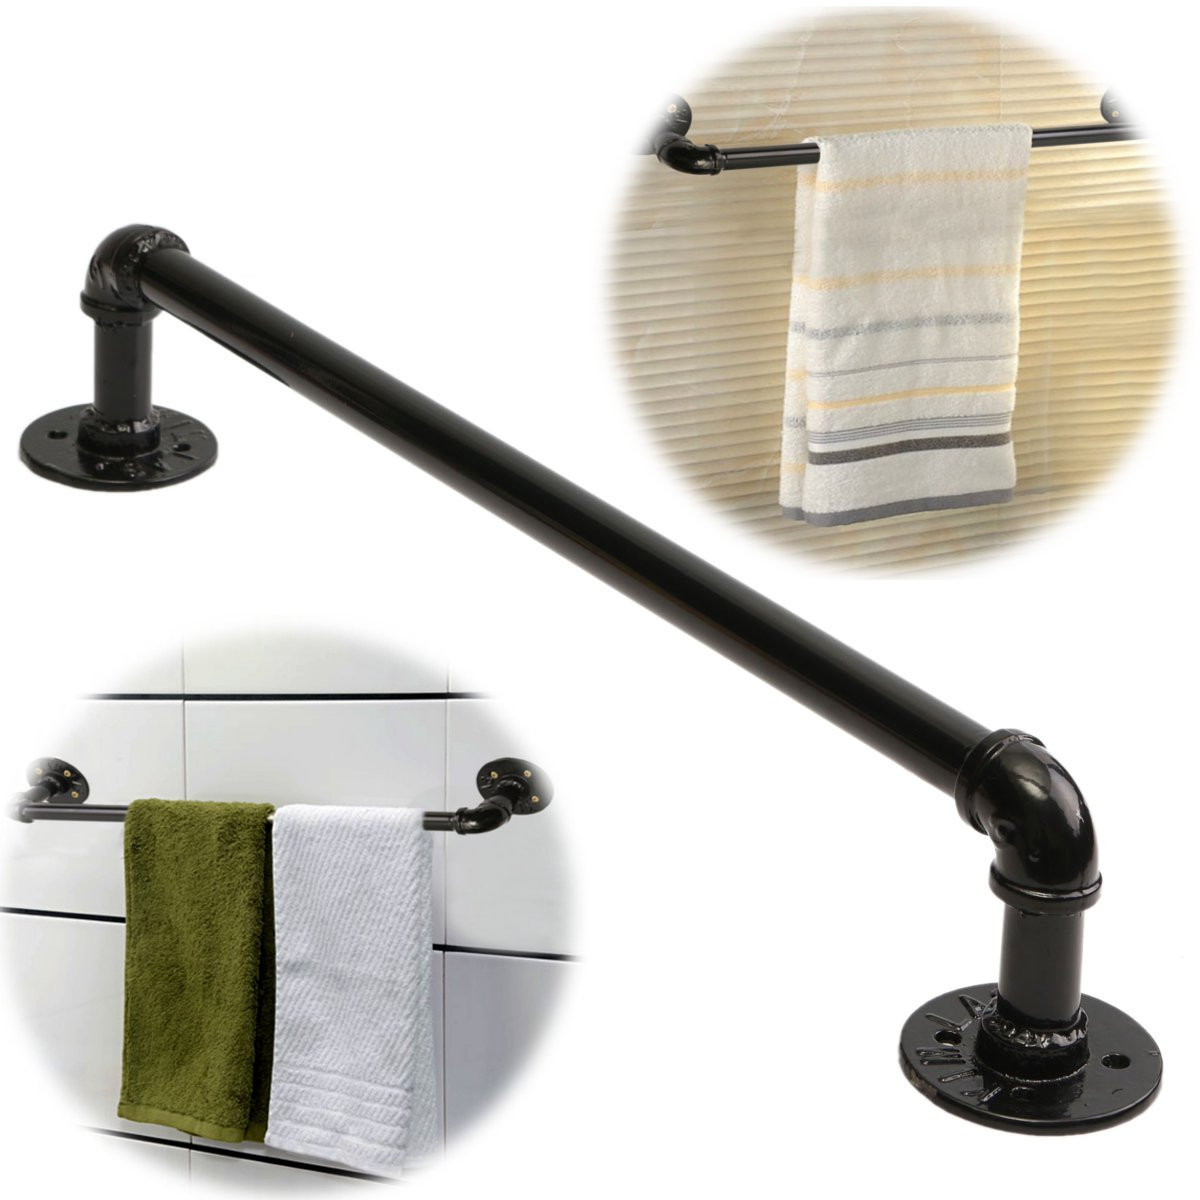 60cm retro industrial tube towel rack clothes rod alex nld for Porte serviette mural noir